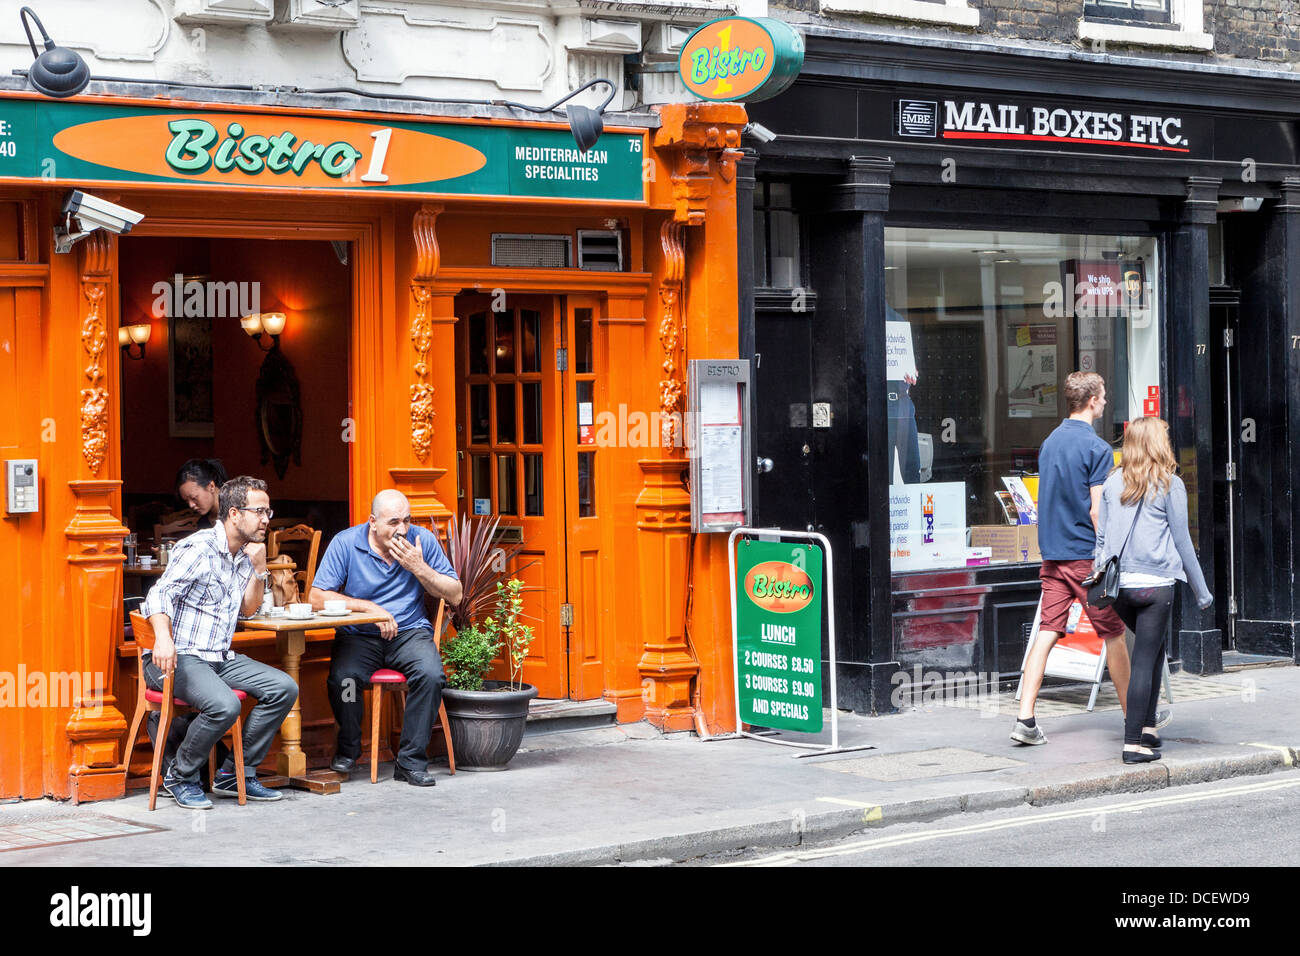 'Bistro1' serving Mediterranean specialities and 'Mailboxes etc' in Beak street, London - Stock Image